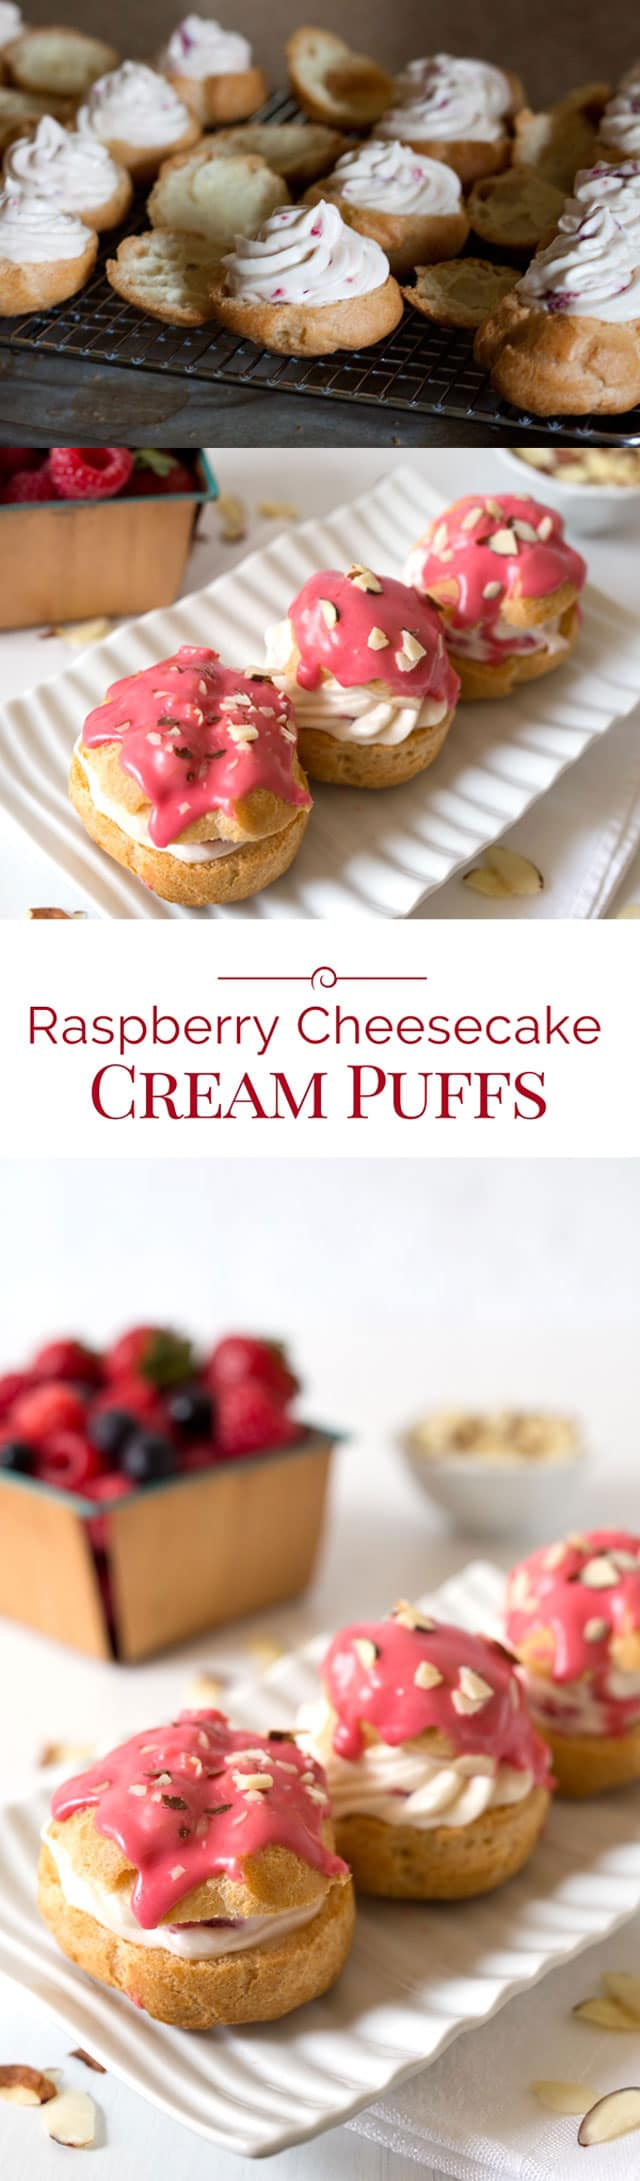 Raspberry-Cheesecake-Cream-Puffs-Collage-3-Barbara-Bakes